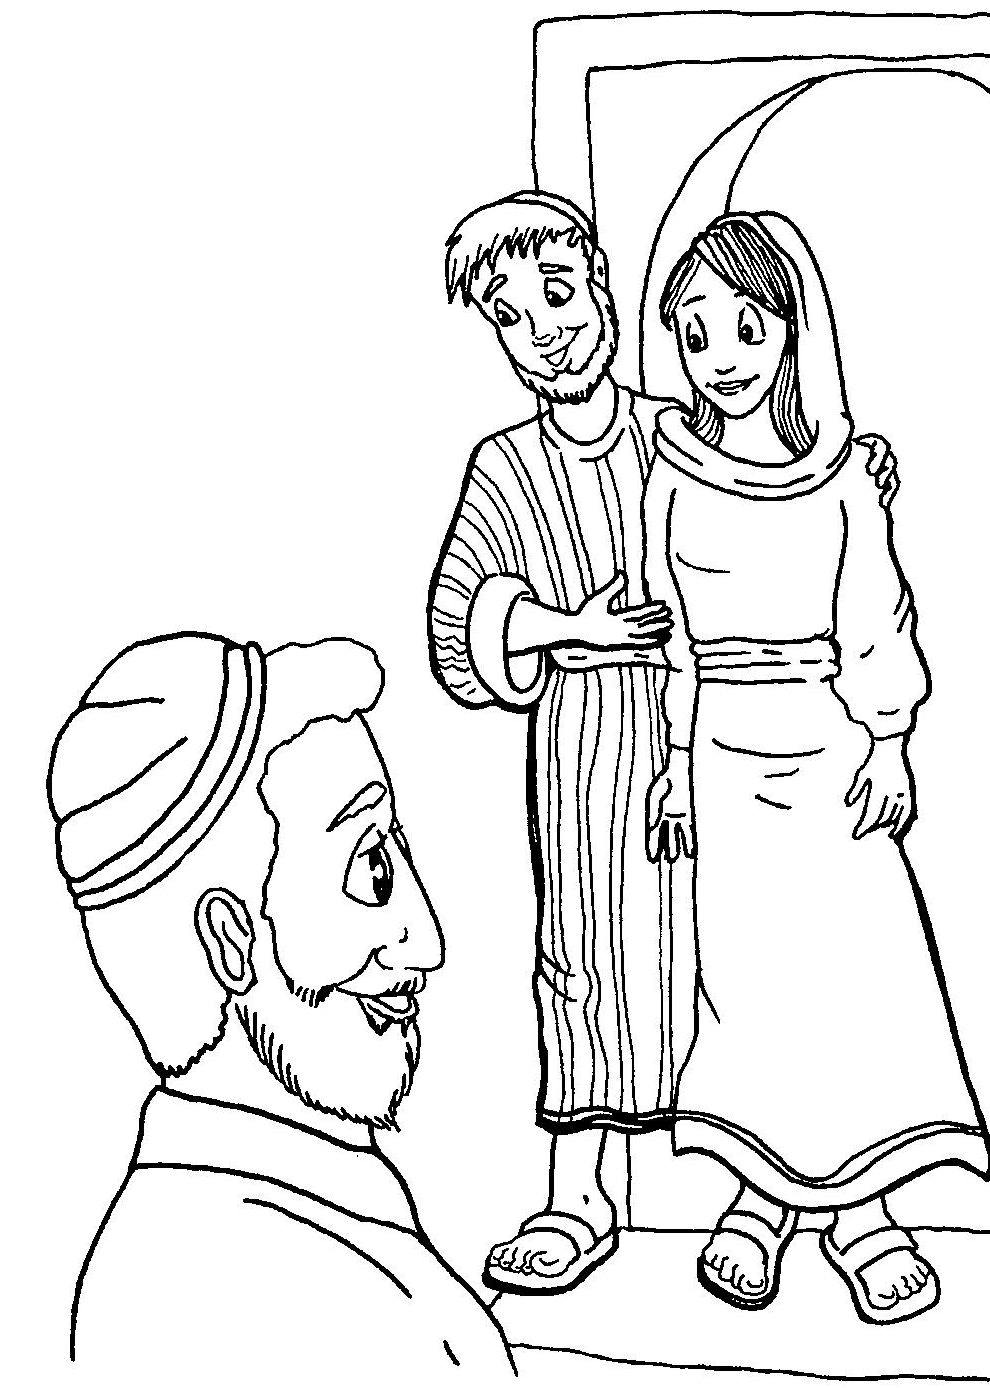 bible related coloring pages printable bible coloring pages coloringmecom bible coloring related pages